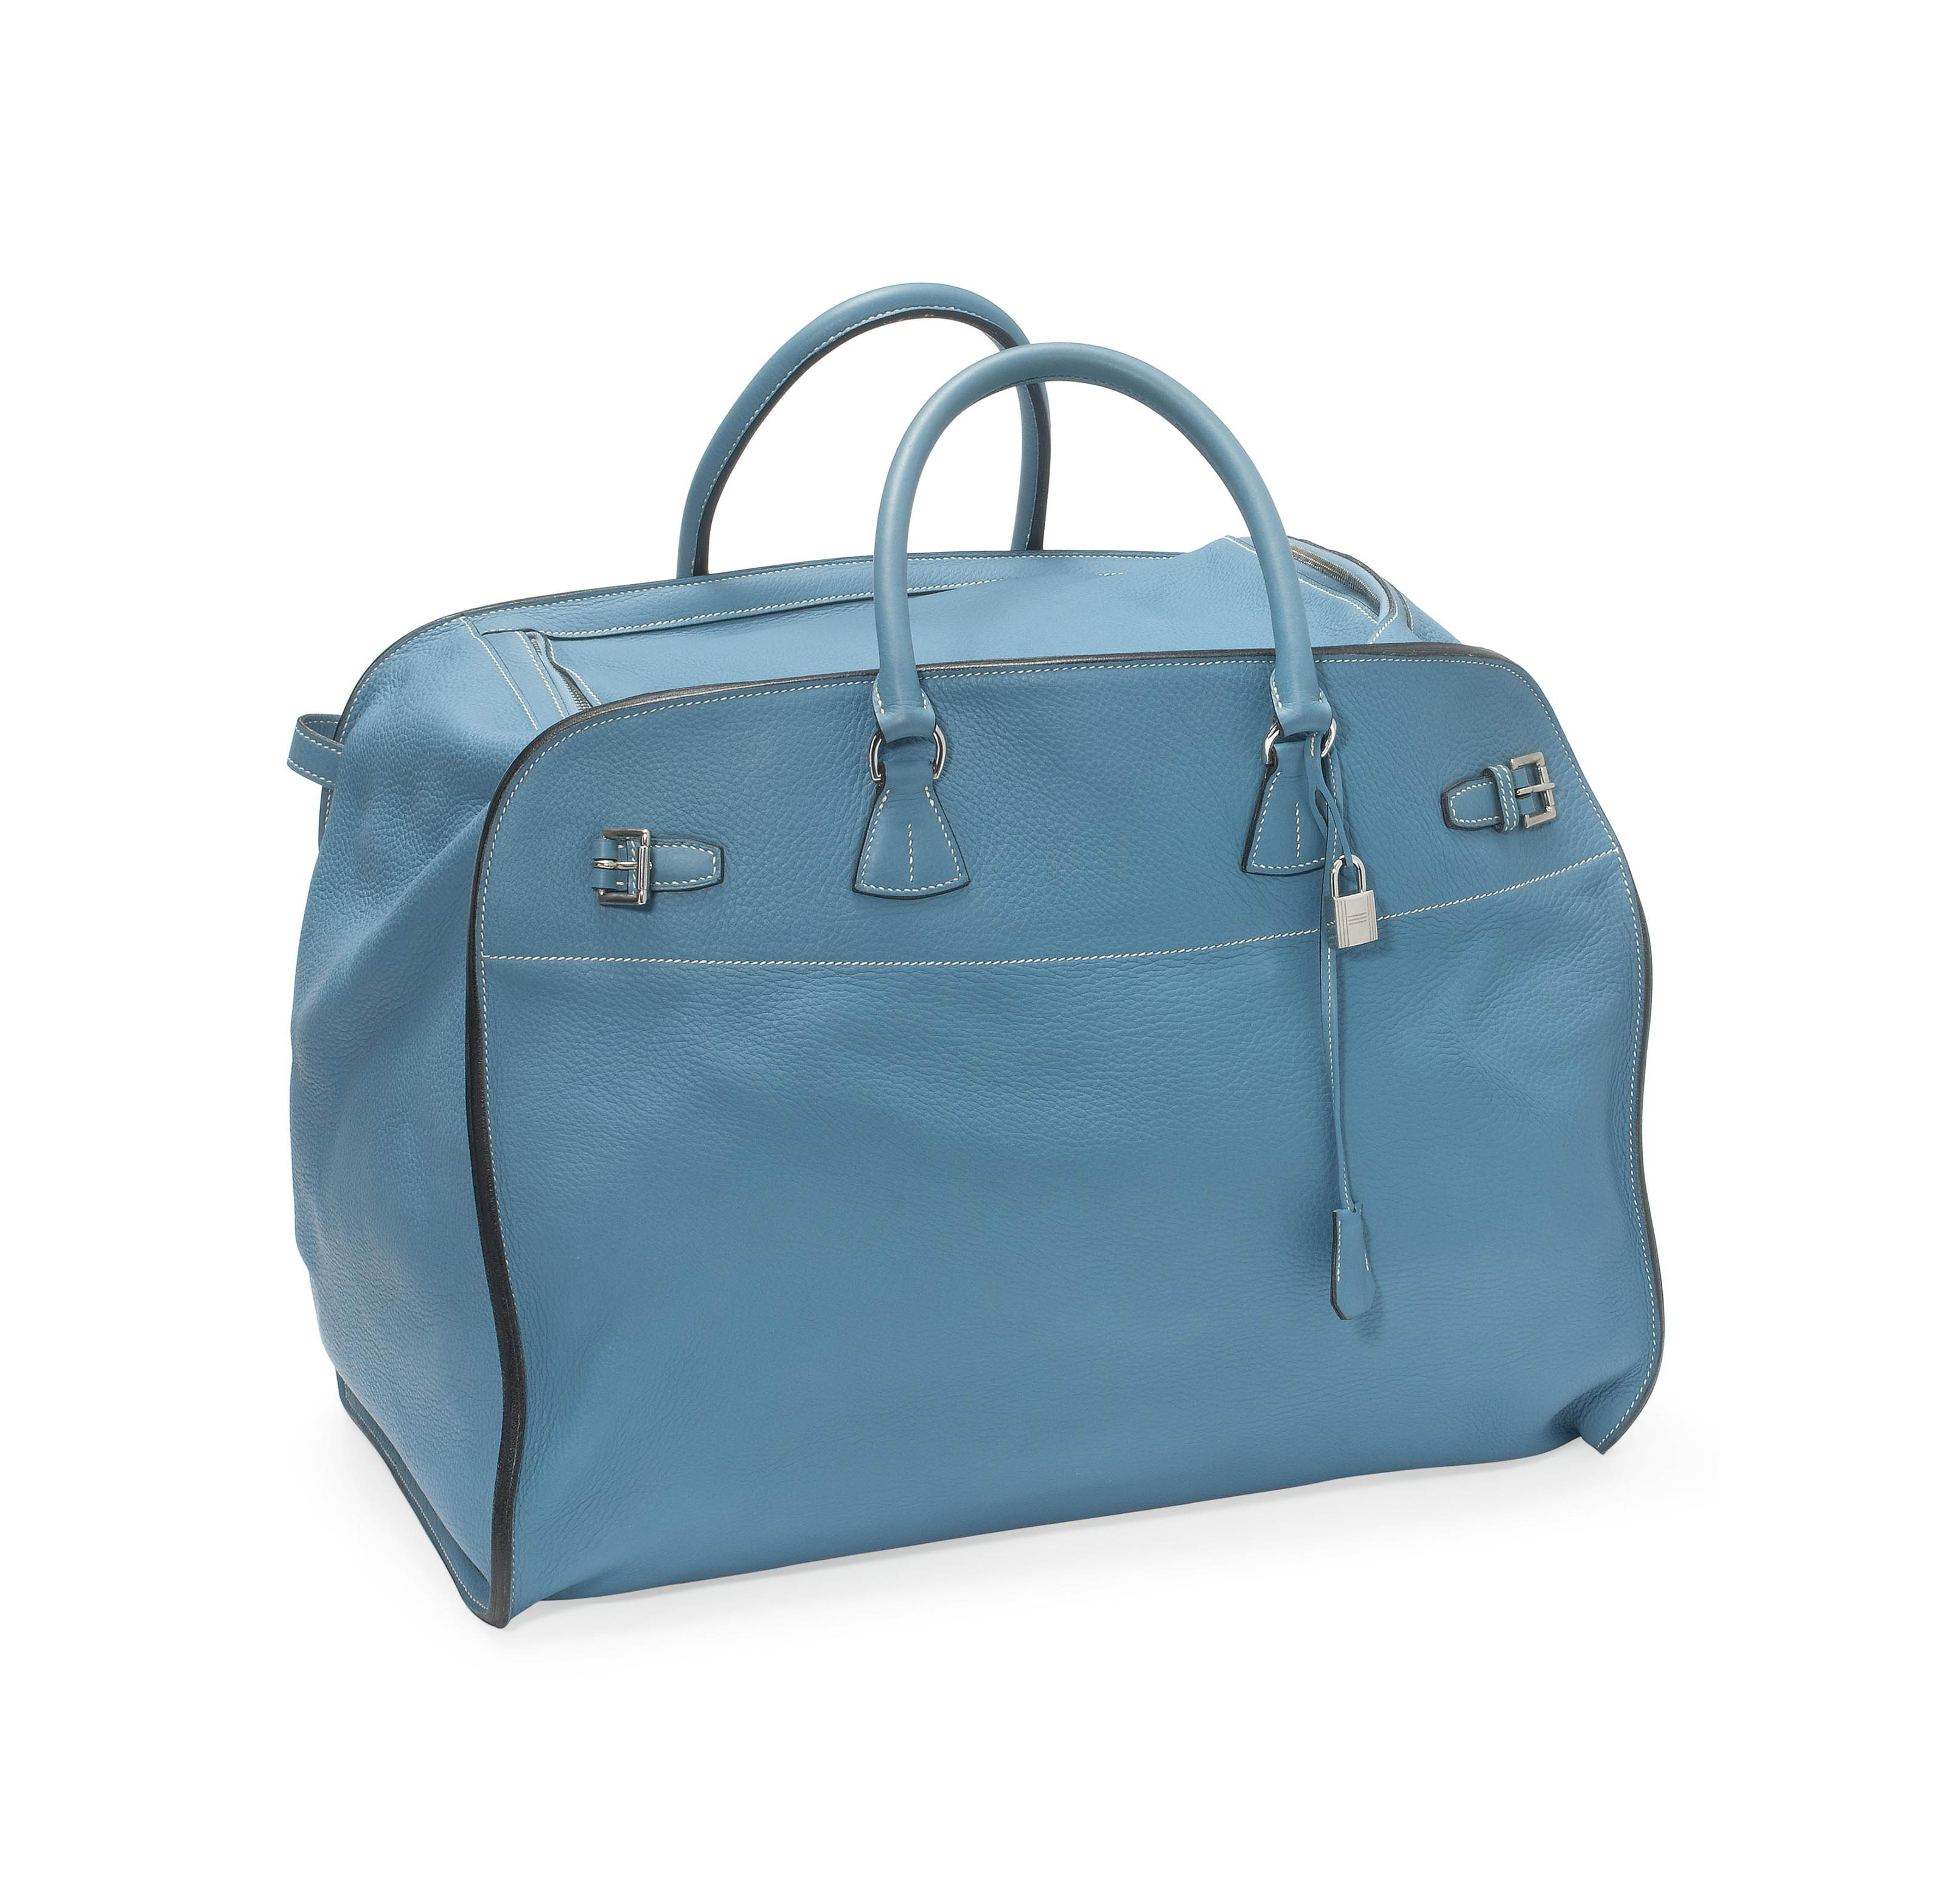 A BLEU JEAN LEATHER HOLD-ALL